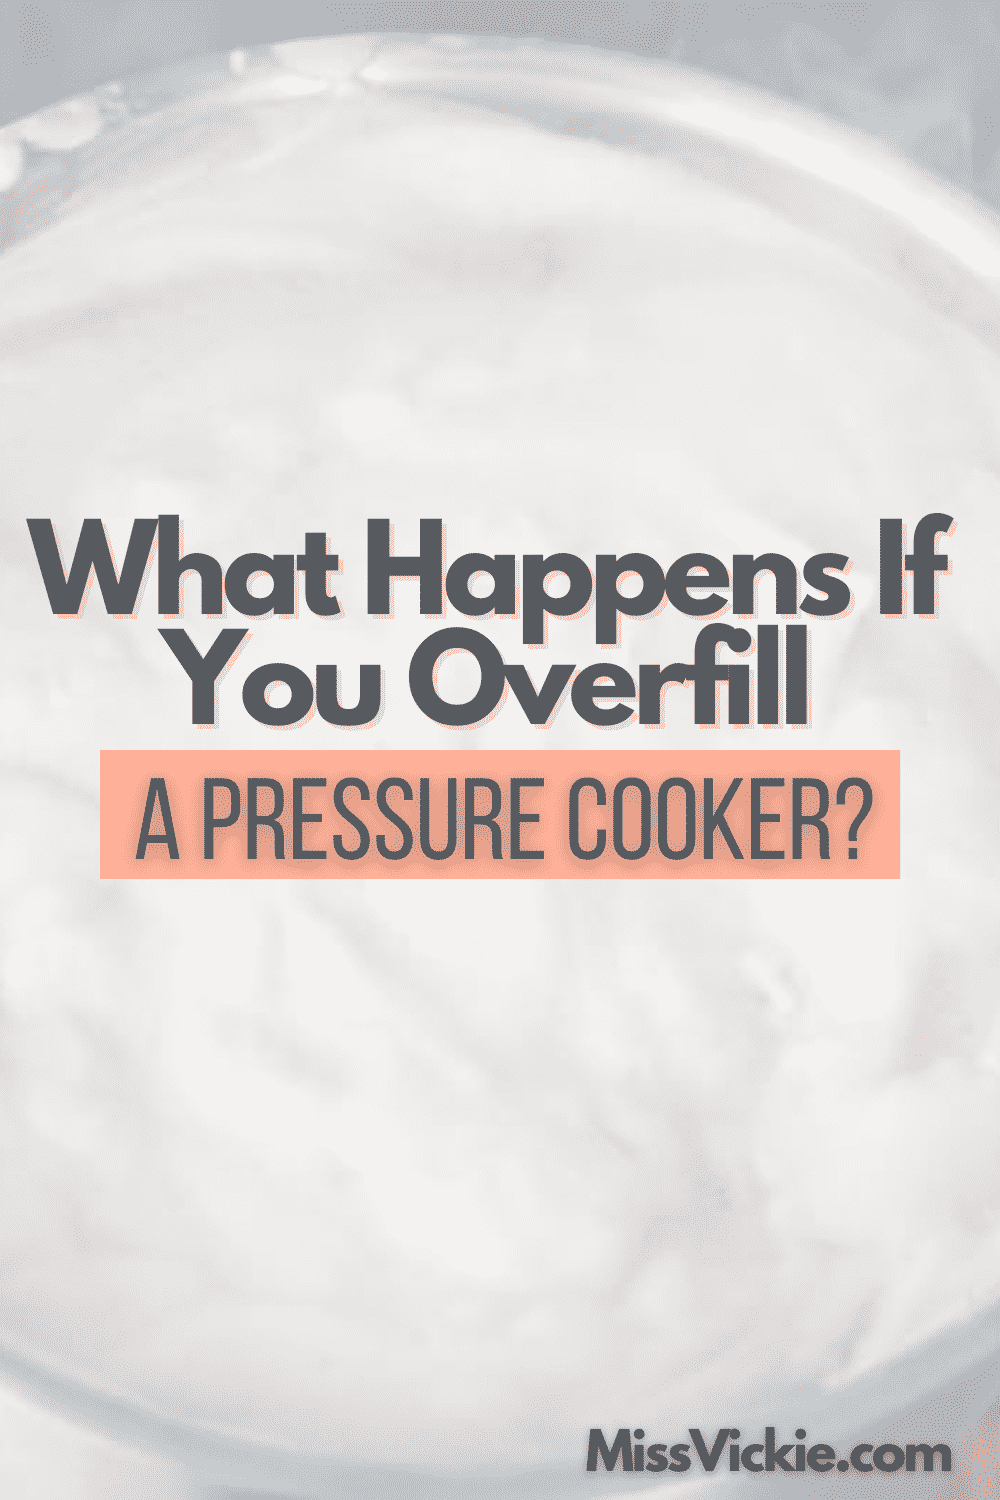 What Happens If You Overfill A Pressure Cooker